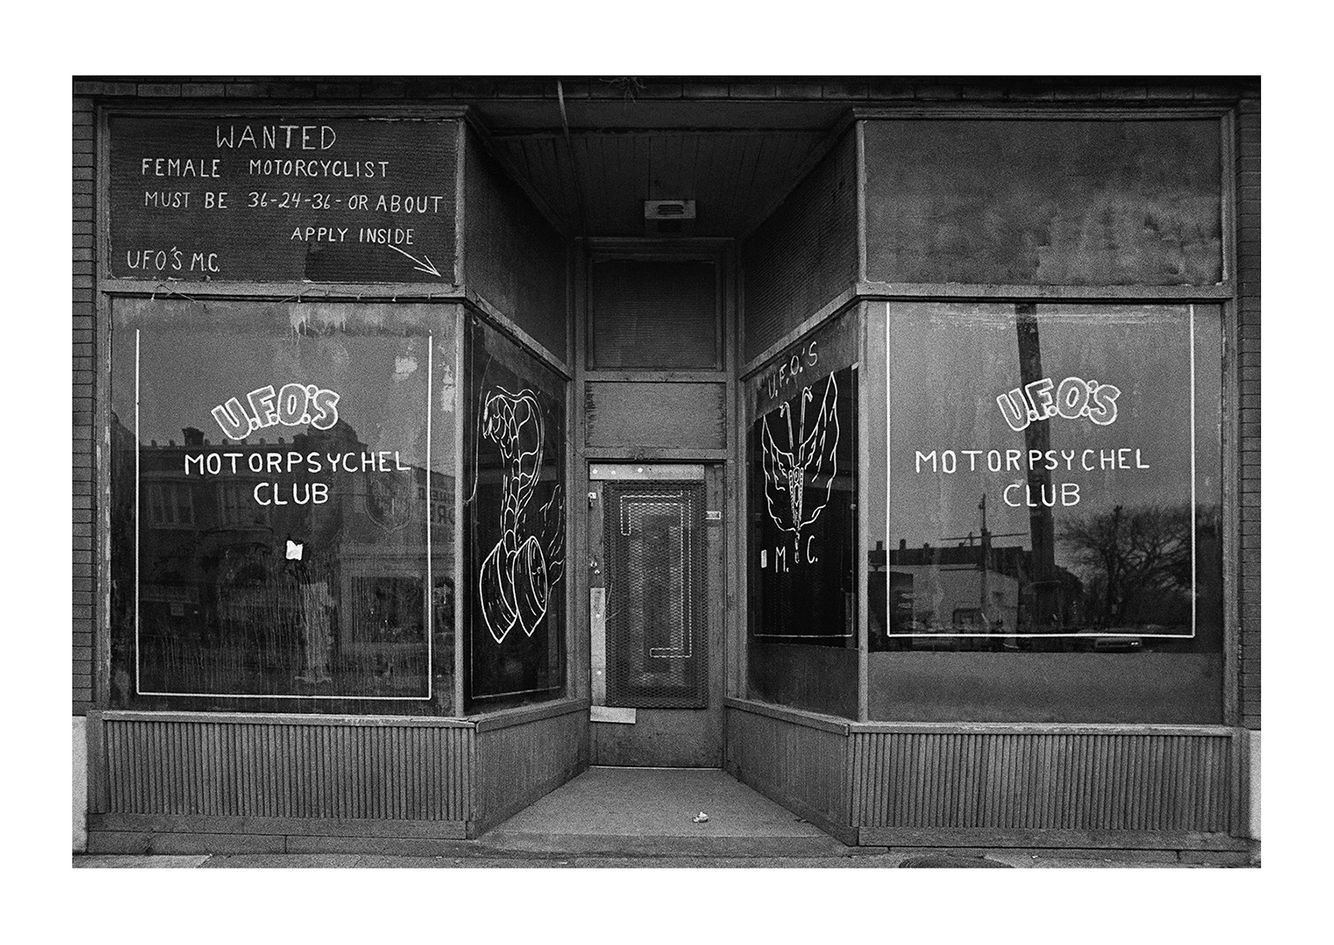 Private Motorcycle Club Entrance, Detroit 1972